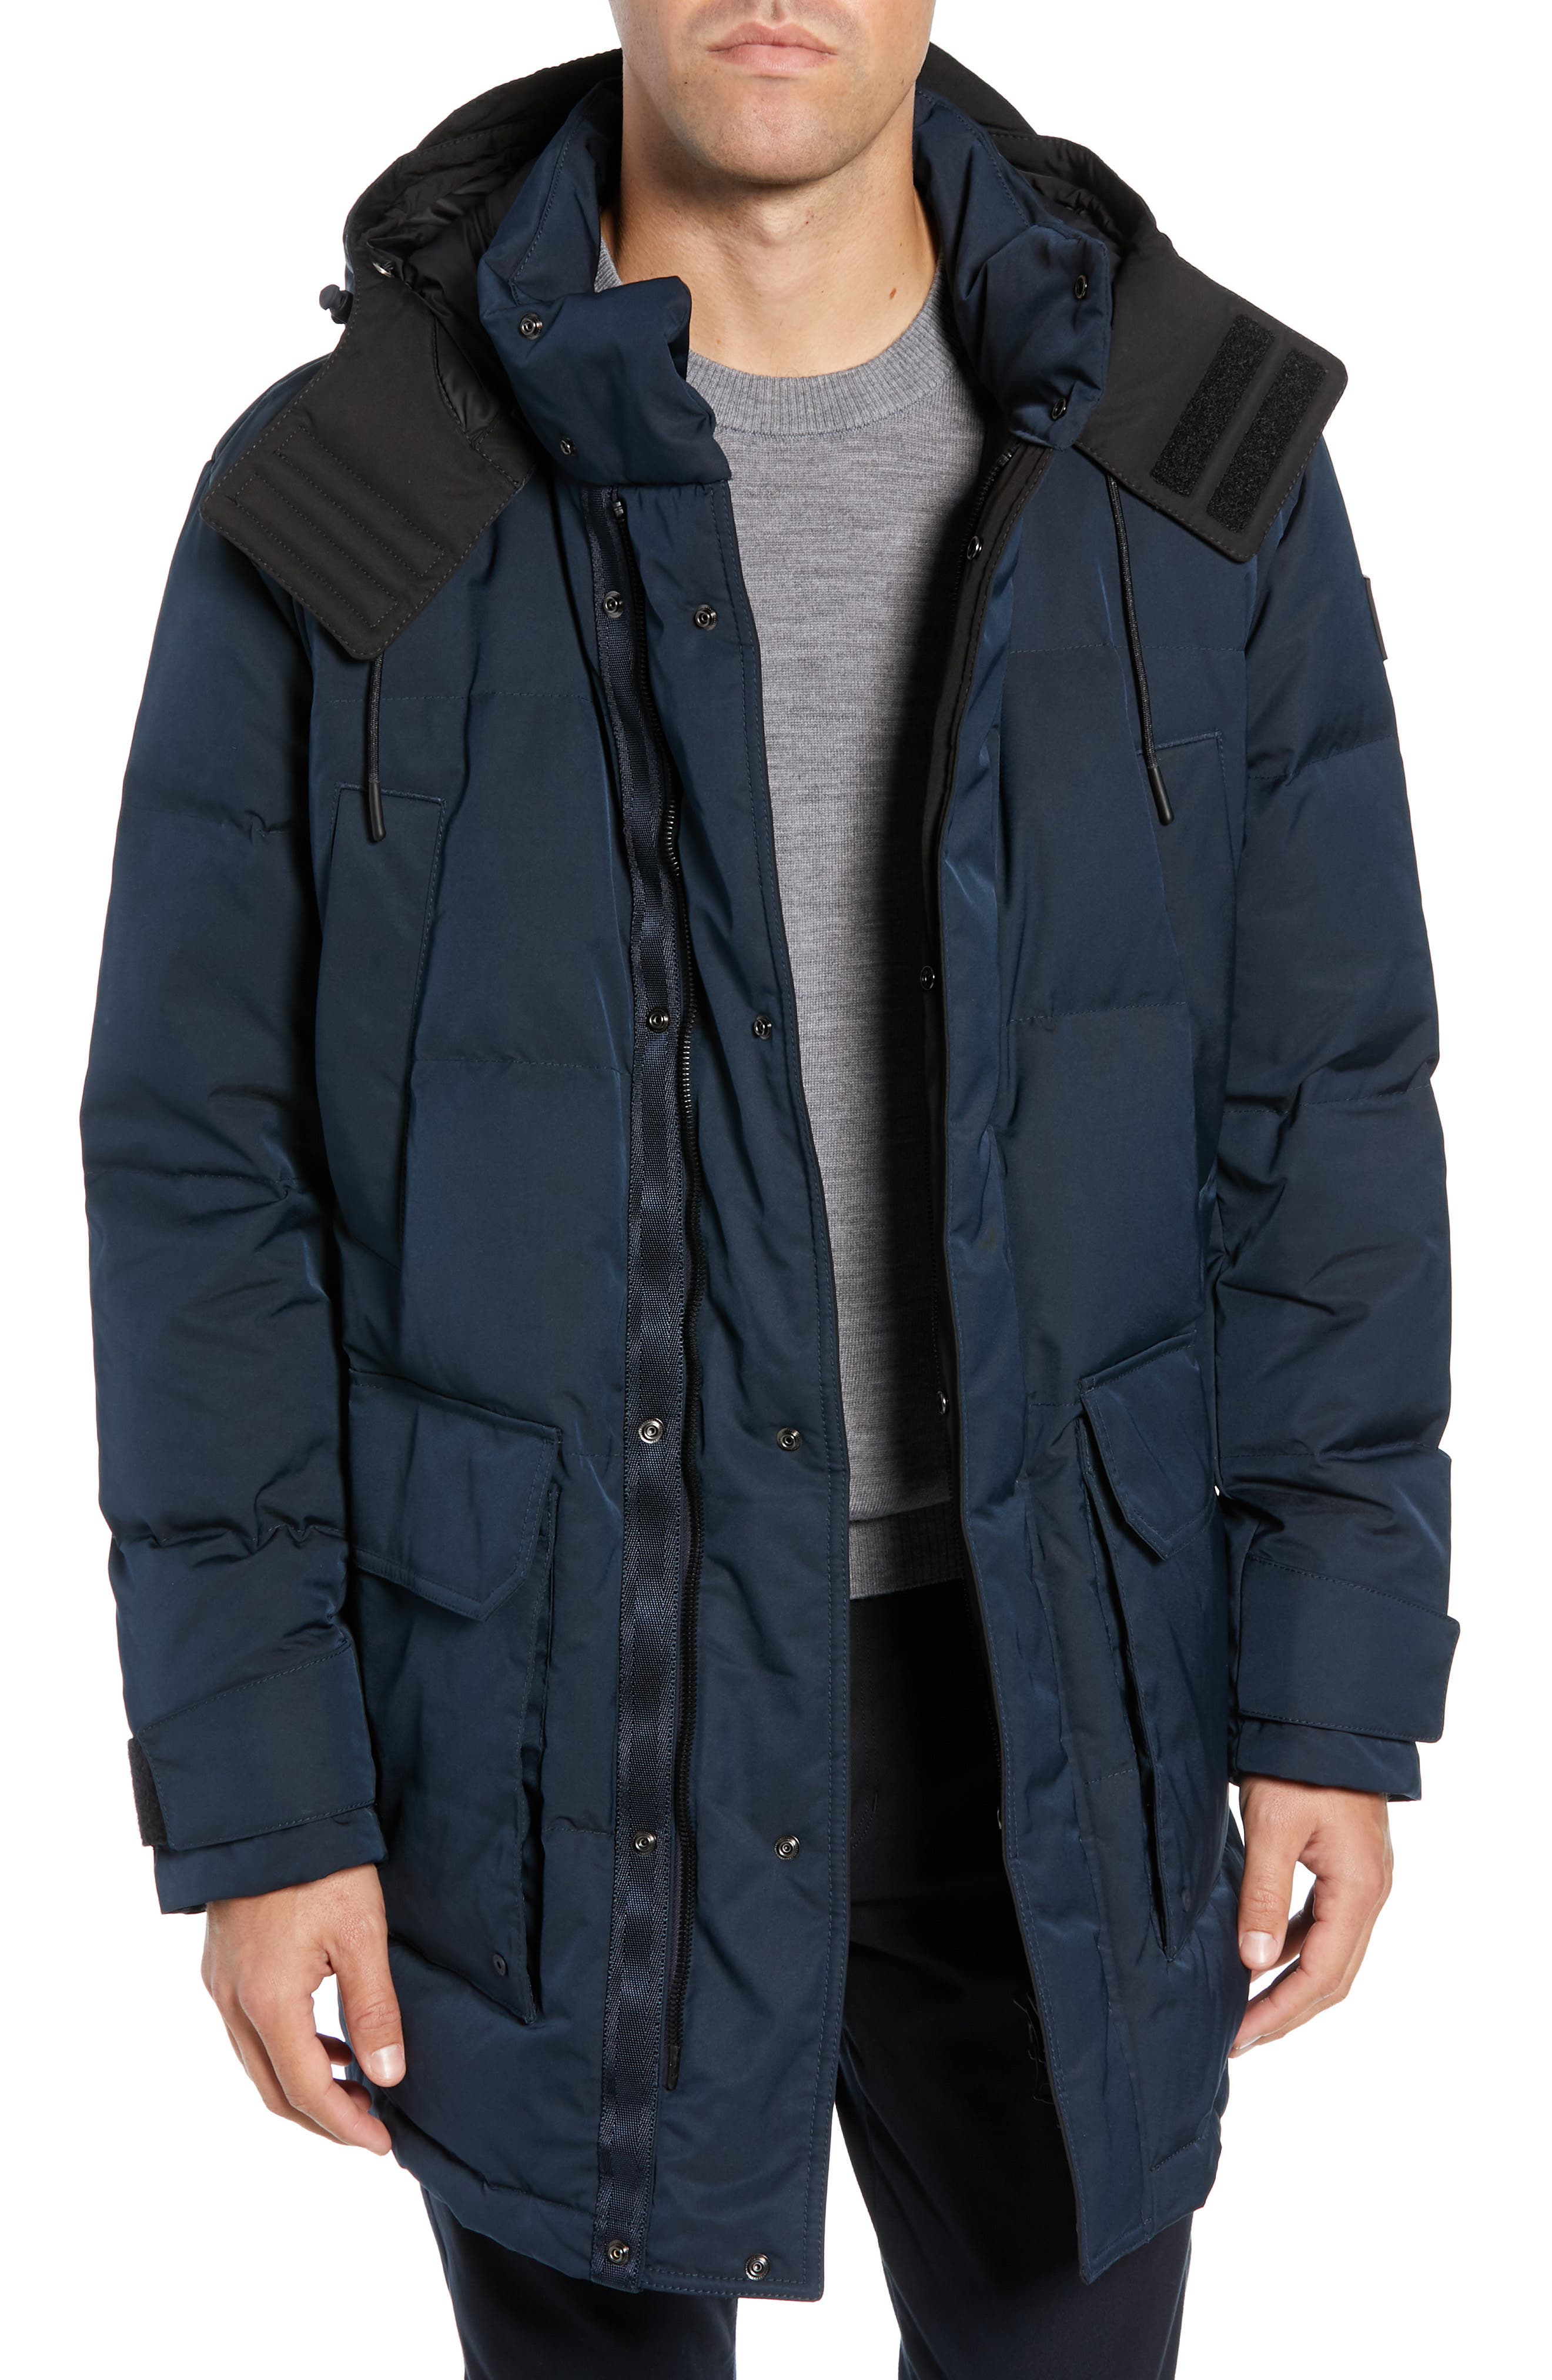 Onek Regular Fit Twill Puffer Jacket,                             Main thumbnail 1, color,                             BLUE